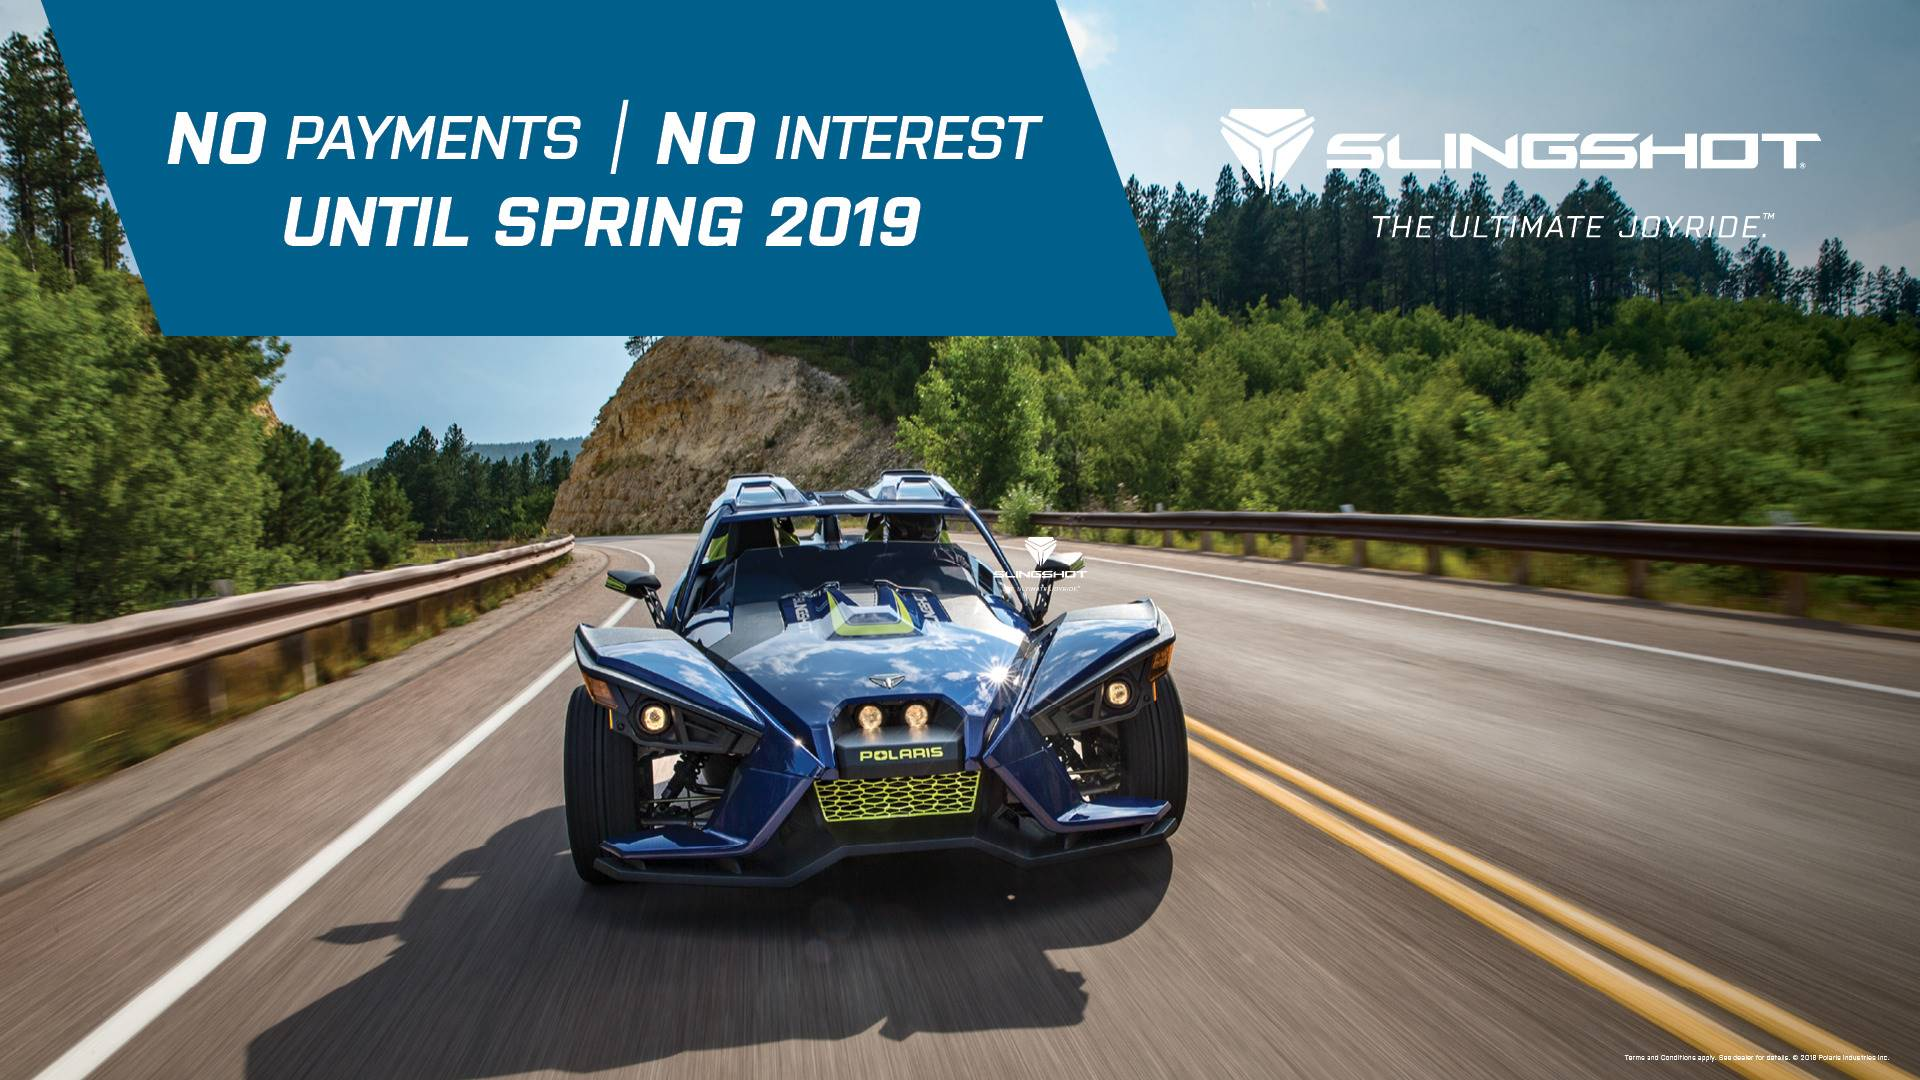 Slingshot - NO Payments | NO Interest UNTIL SPRING 2019